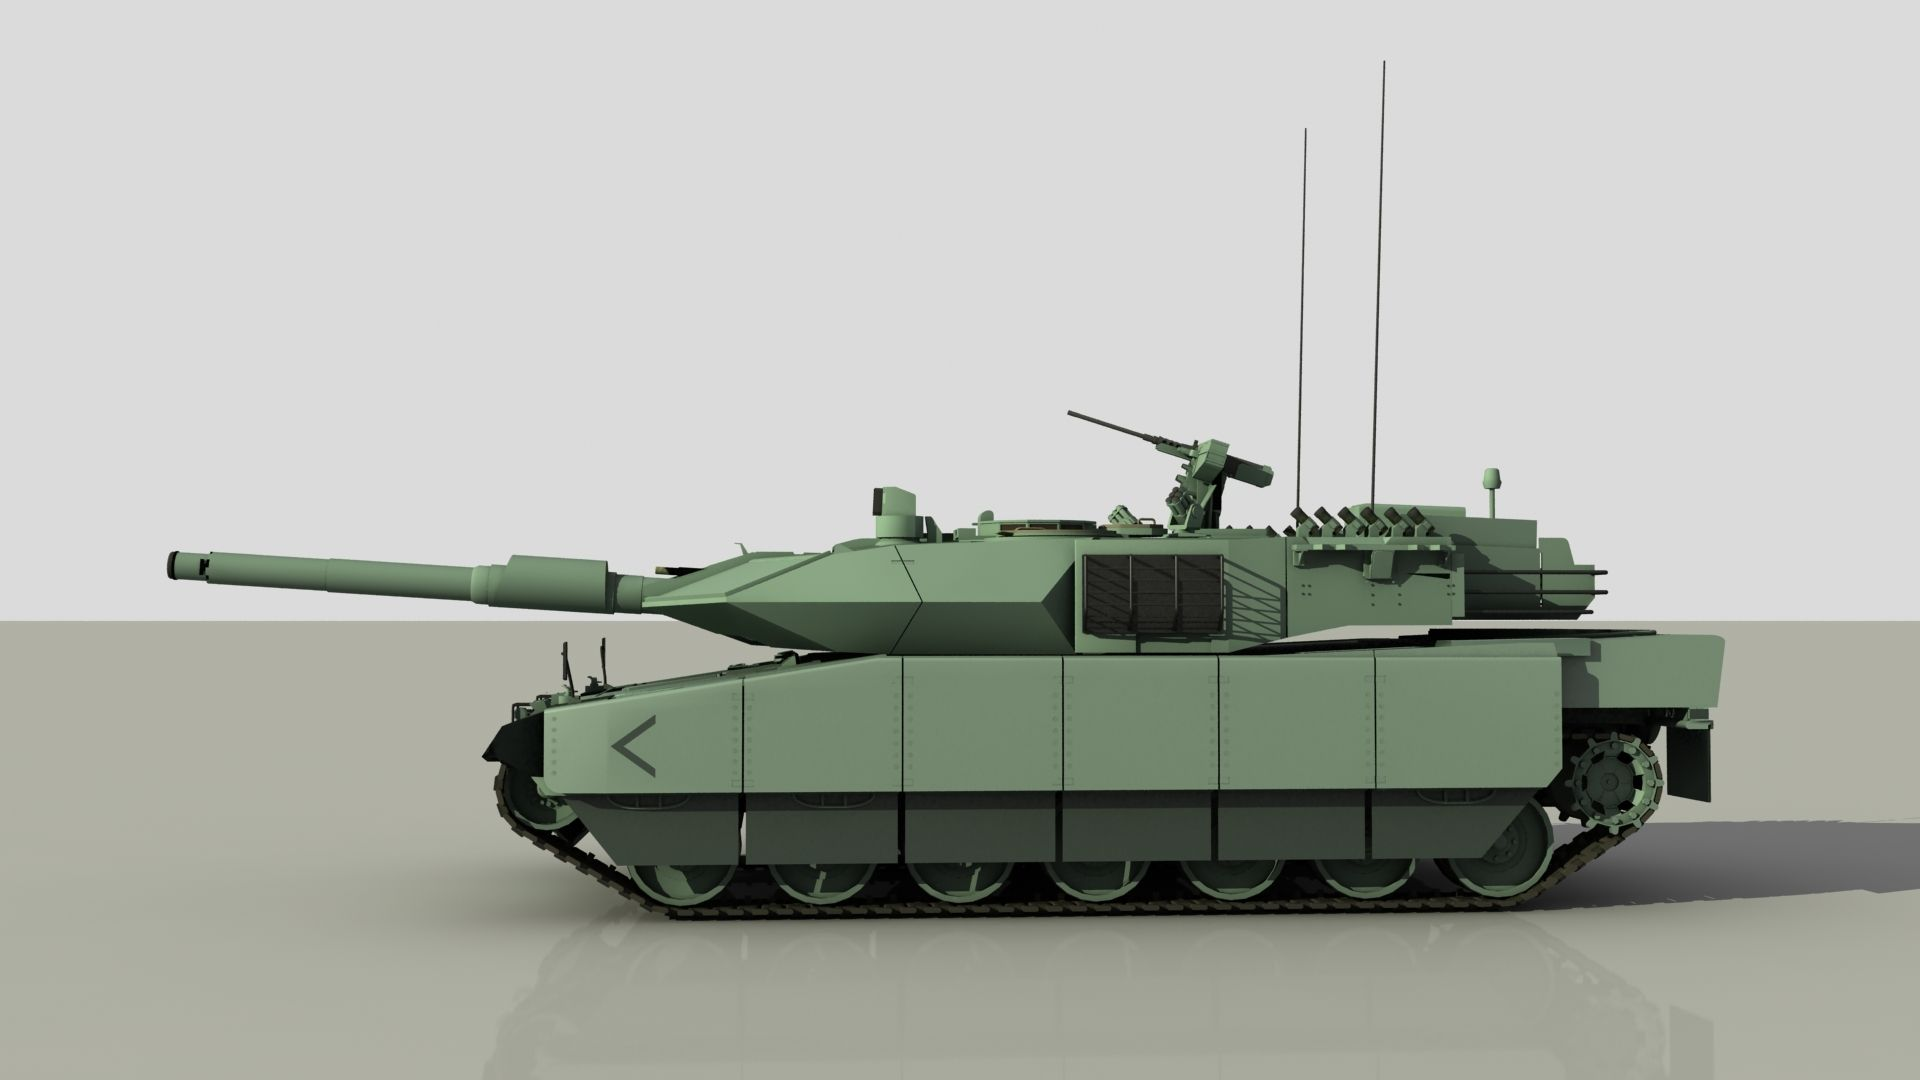 Turkish Main Battle Tank Altay Main Turkish Battle Altay Battle Tank Tank Battle